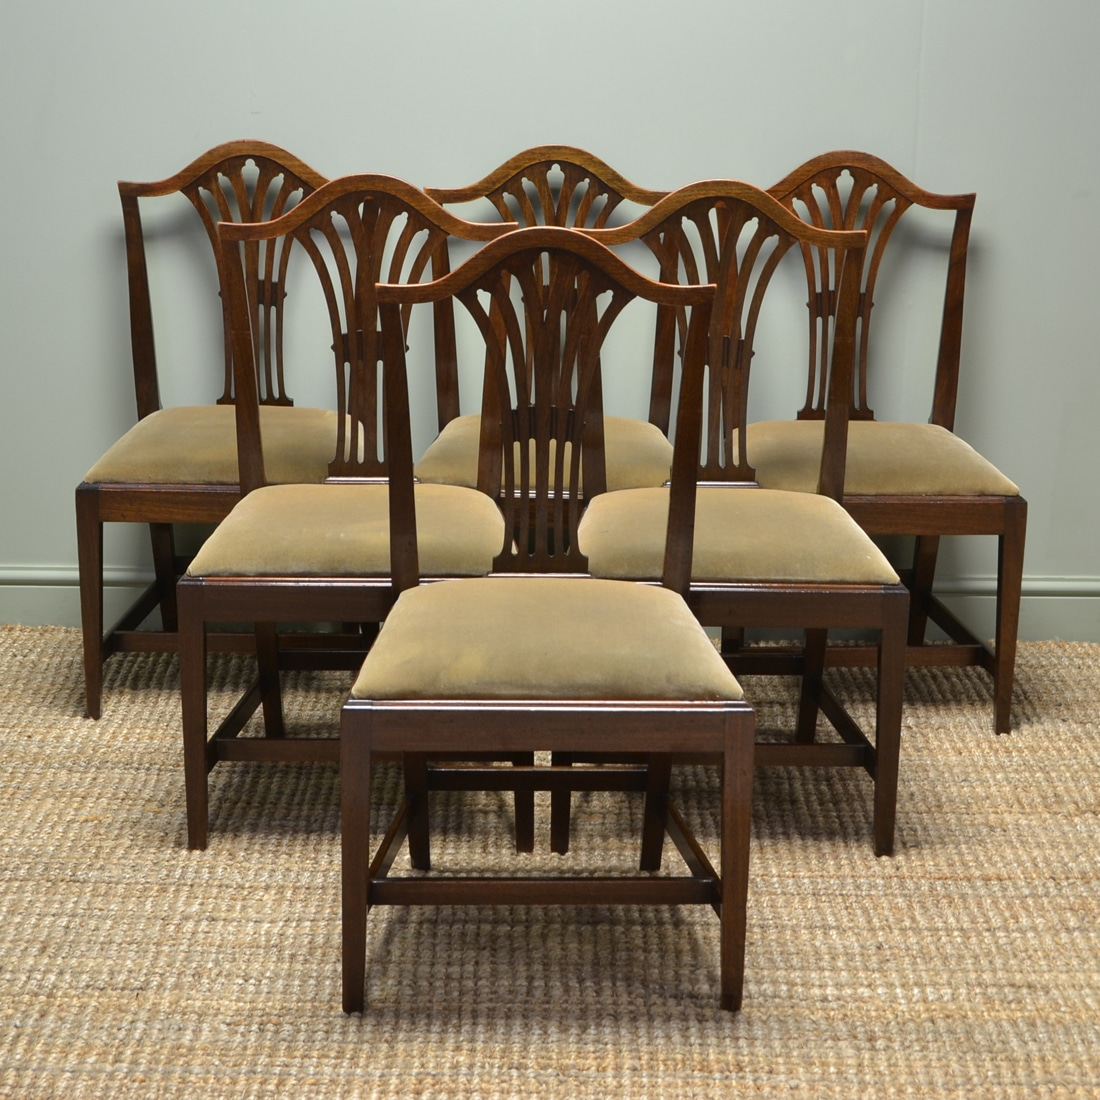 Antique Dining Table Styles and Types